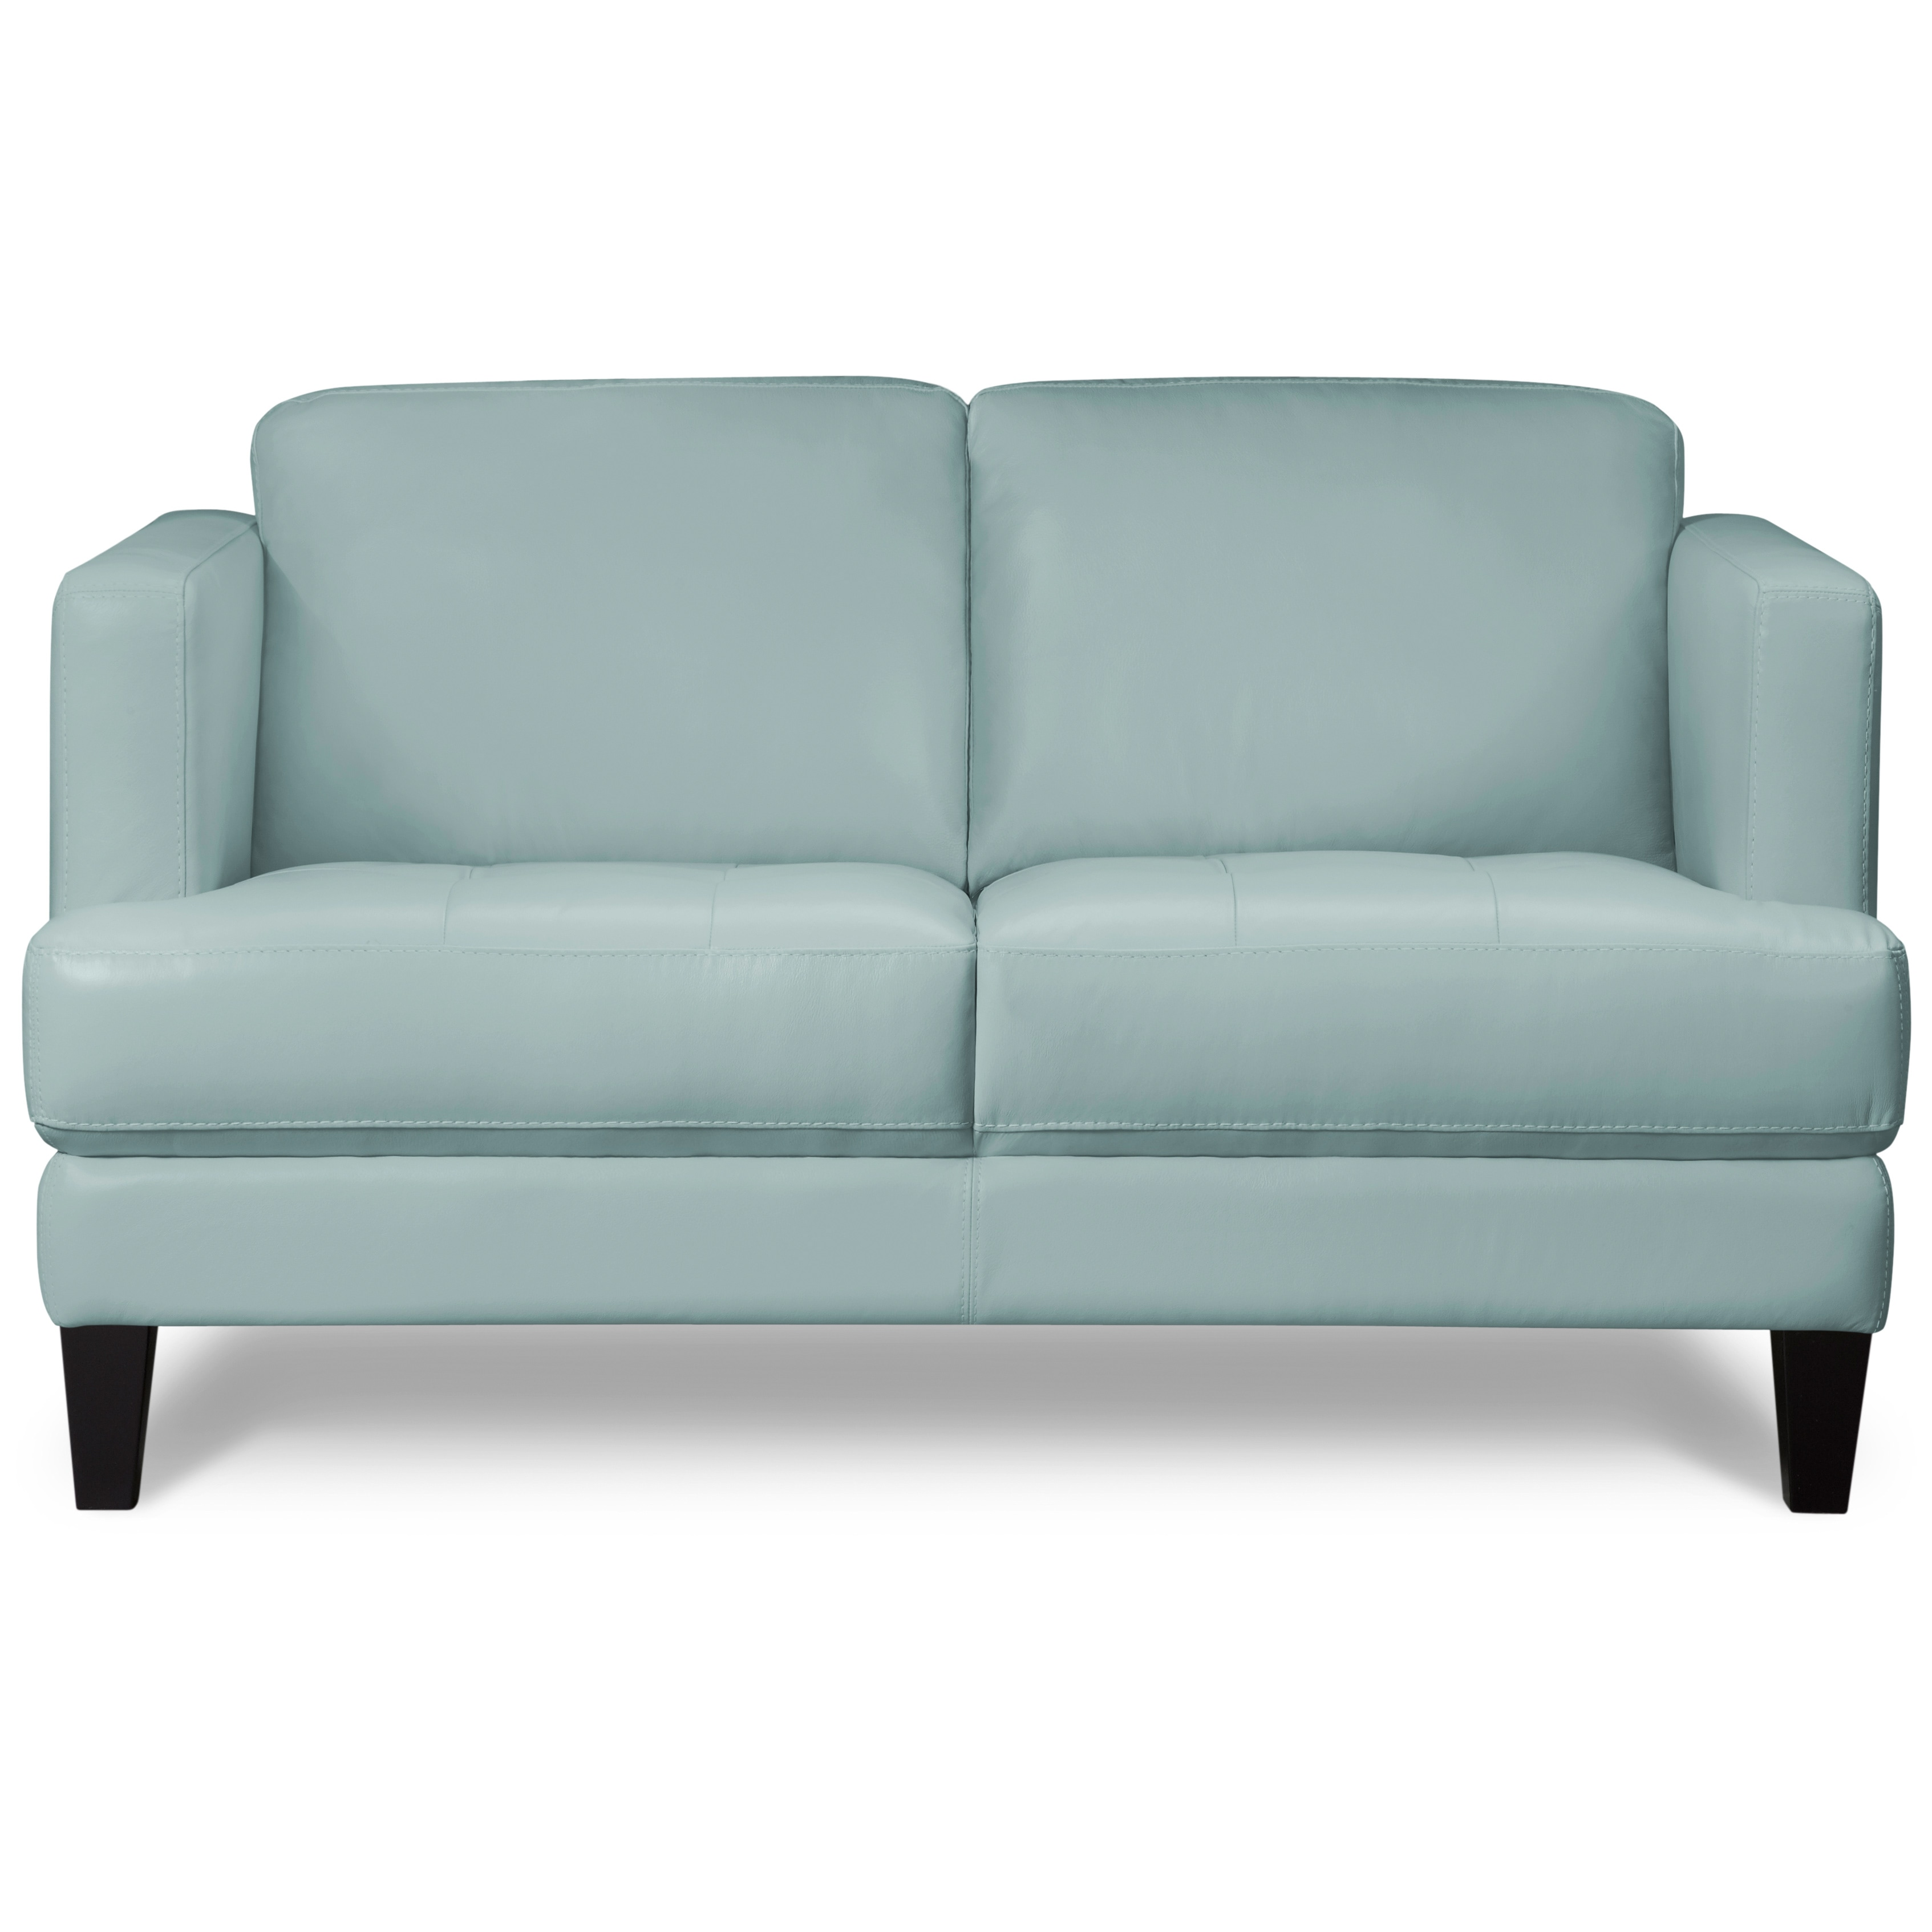 madeline sofa art van dhp euro futon bed share email